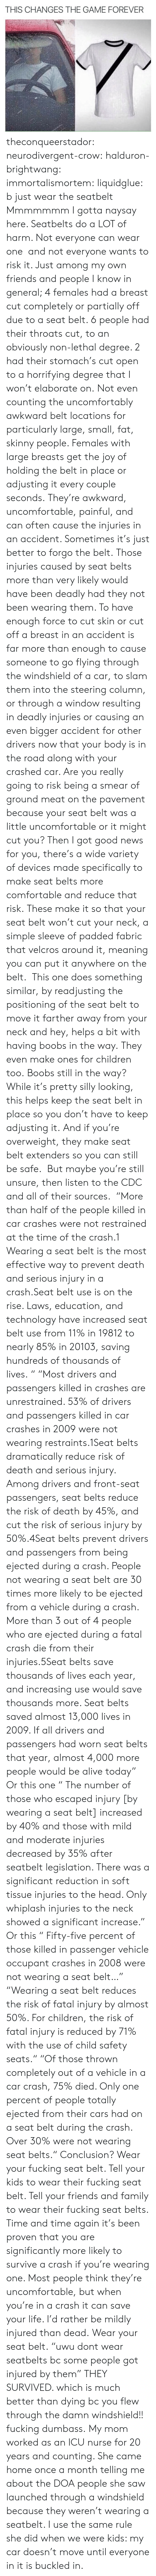 cdc: THIS CHANGES THE GAME FOREVER theconqueerstador:  neurodivergent-crow:  halduron-brightwang:  immortalismortem:  liquidglue:   b just wear the seatbelt   Mmmmmmm I gotta naysay here. Seatbelts do a LOT of harm. Not everyone can wear one and not everyone wants to risk it. Just among my own friends and people I know in general; 4 females had a breast cut completely or partially off due to a seat belt. 6 people had their throats cut, to an obviously non-lethal degree. 2 had their stomach's cut open to a horrifying degree that I won't elaborate on. Not even counting the uncomfortably awkward belt locations for particularly large, small, fat, skinny people. Females with large breasts get the joy of holding the belt in place or adjusting it every couple seconds. They're awkward, uncomfortable, painful, and can often cause the injuries in an accident. Sometimes it's just better to forgo the belt.  Those injuries caused by seat belts more than very likely would have been deadly had they not been wearing them. To have enough force to cut skin or cut off a breast in an accident is far more than enough to cause someone to go flying through the windshield of a car, to slam them into the steering column, or through a window resulting in deadly injuries or causing an even bigger accident for other drivers now that your body is in the road along with your crashed car. Are you really going to risk being a smear of ground meat on the pavement because your seat belt was a little uncomfortable or it might cut you? Then I got good news for you, there's a wide variety of devices made specifically to make seat belts more comfortable and reduce that risk. These make it so that your seat belt won't cut your neck, a simple sleeve of padded fabric that velcros around it, meaning you can put it anywhere on the belt. This one does something similar, by readjusting the positioning of the seat belt to move it farther away from your neck and hey, helps a bit with having boobs in the way. The